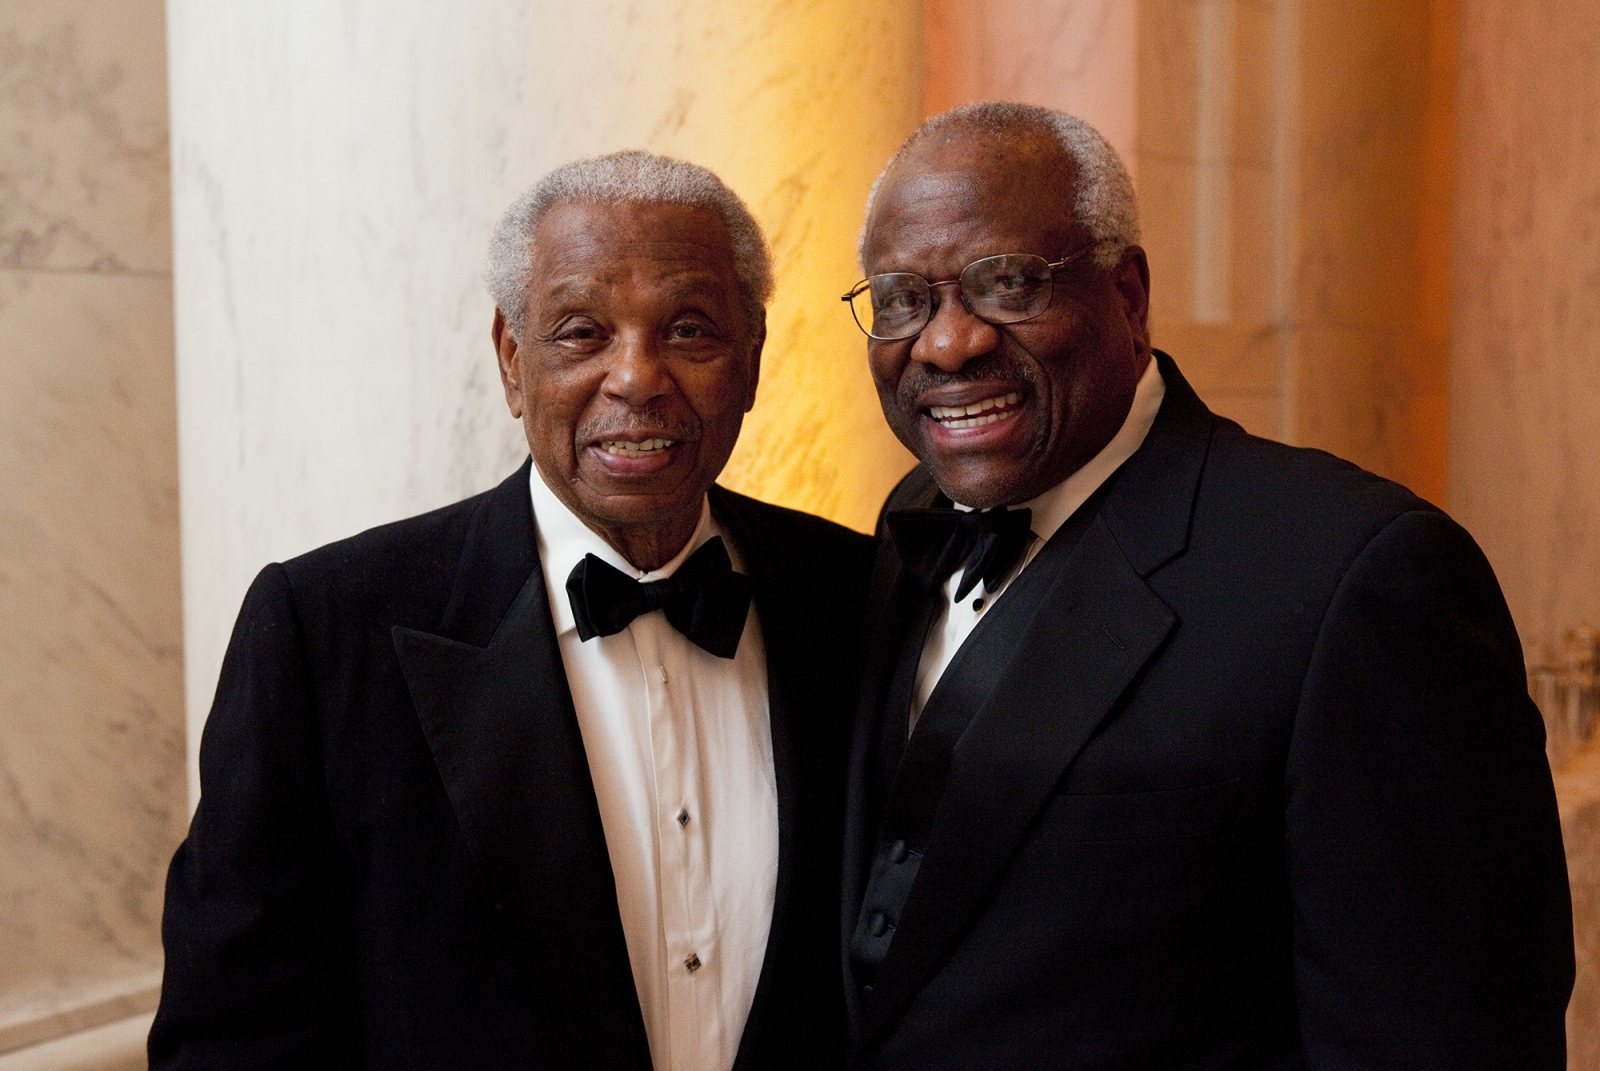 Supreme Court Justice Clarence Thomas and his friend and mentor, Judge Miller.